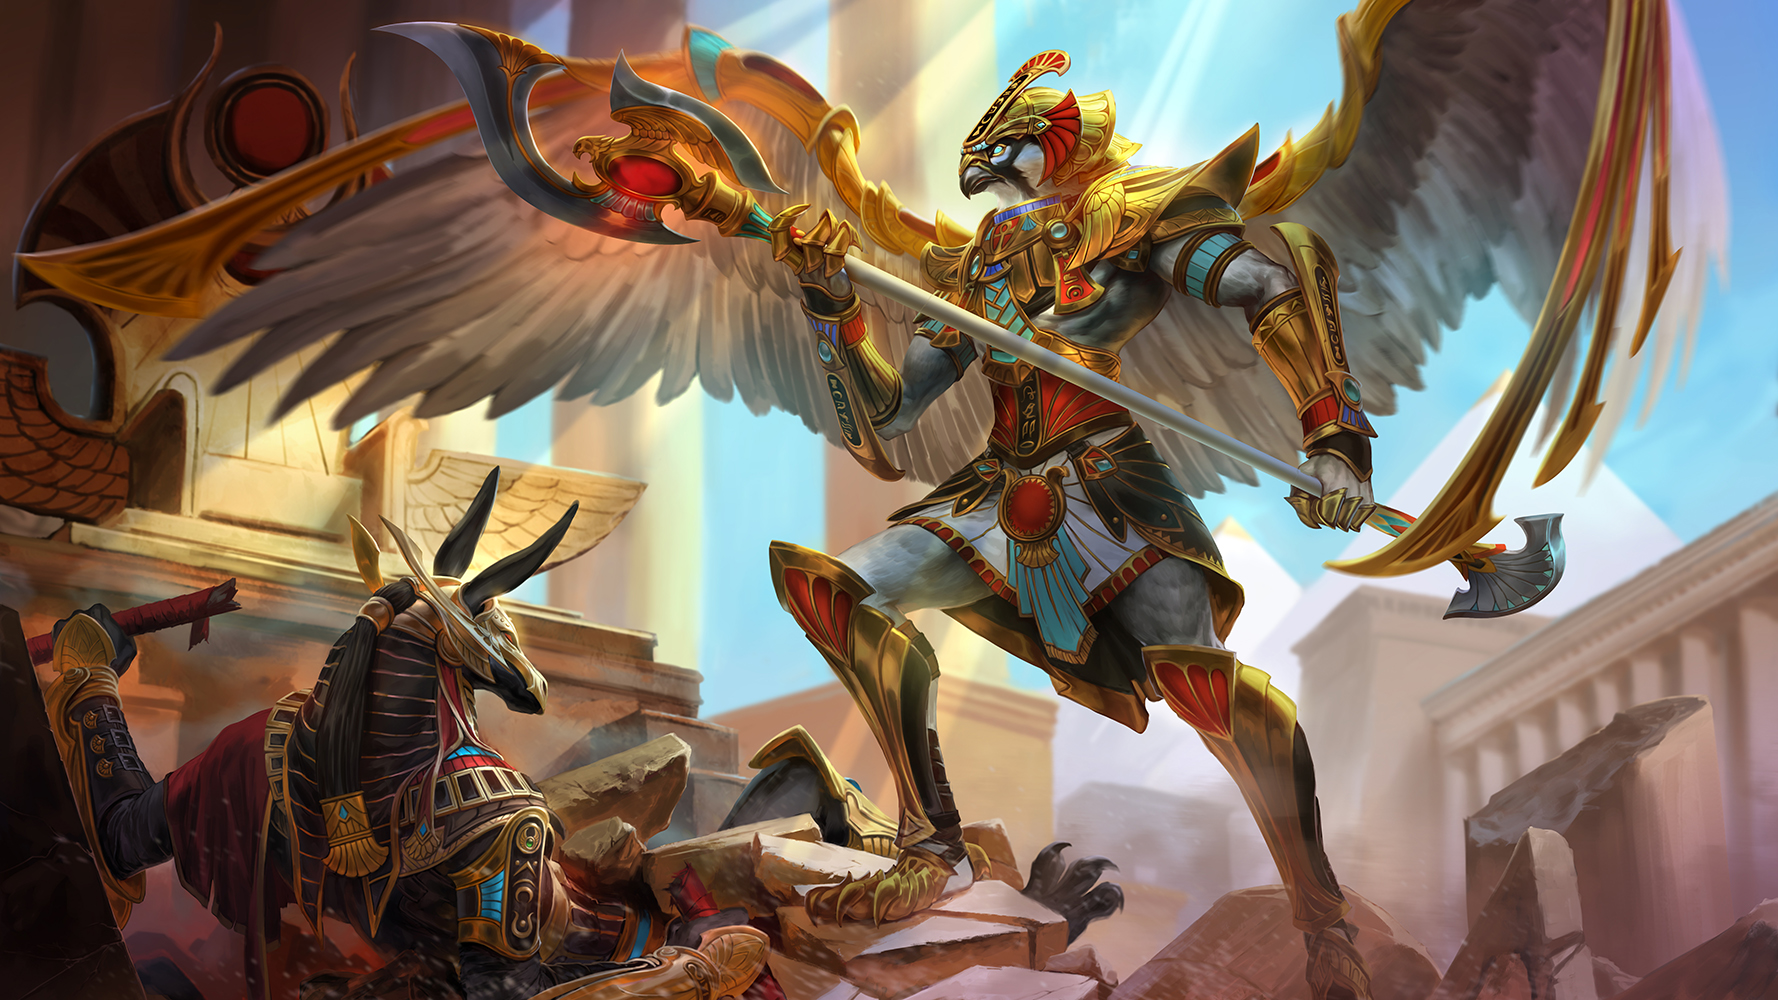 Exclusive Reveal: Smite Launches Two New Gods April 30